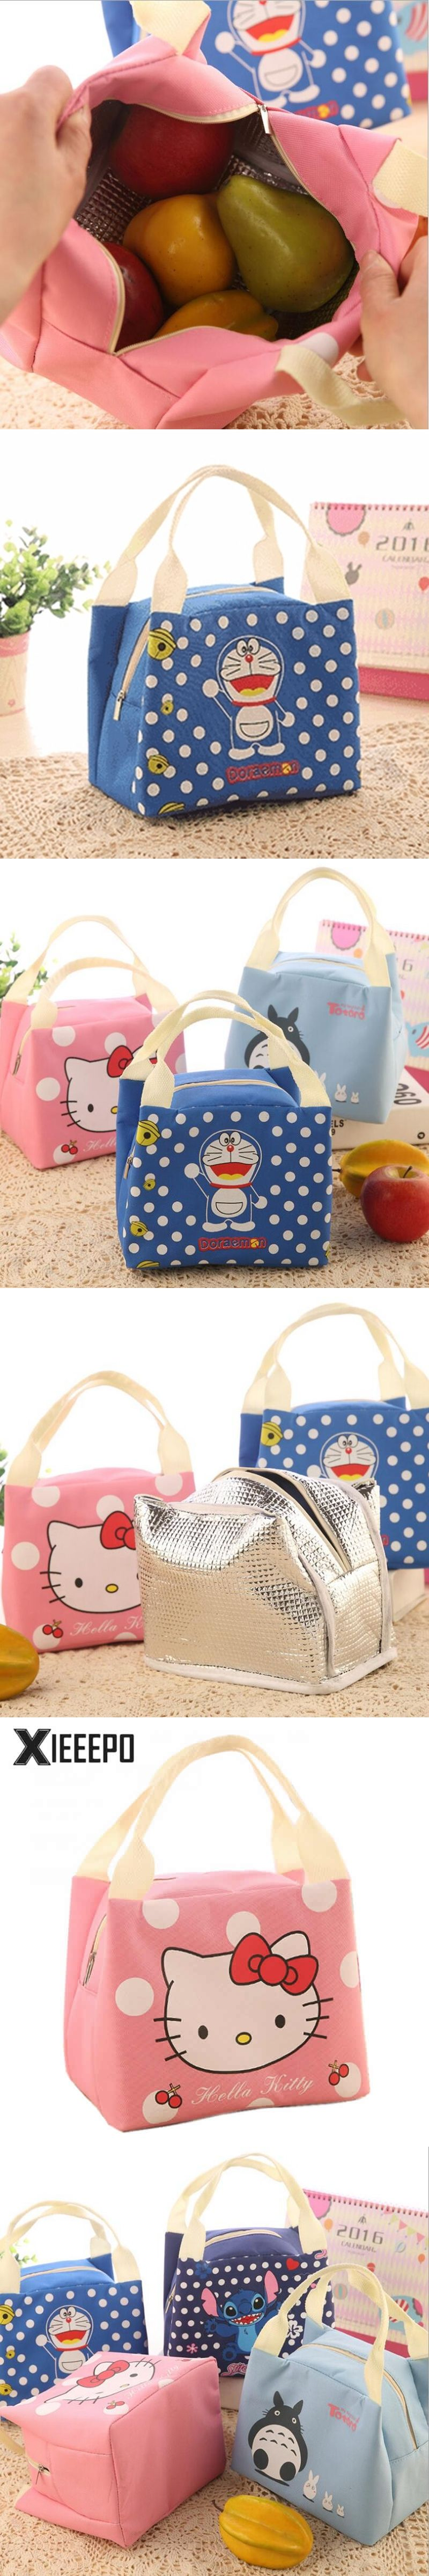 Portable Lunch Bag Cartoon Hello Kitty Insulated Cooler Bags Thermal Food  Picnic Lunch Bags Women Kids 3bbd9ada47d07